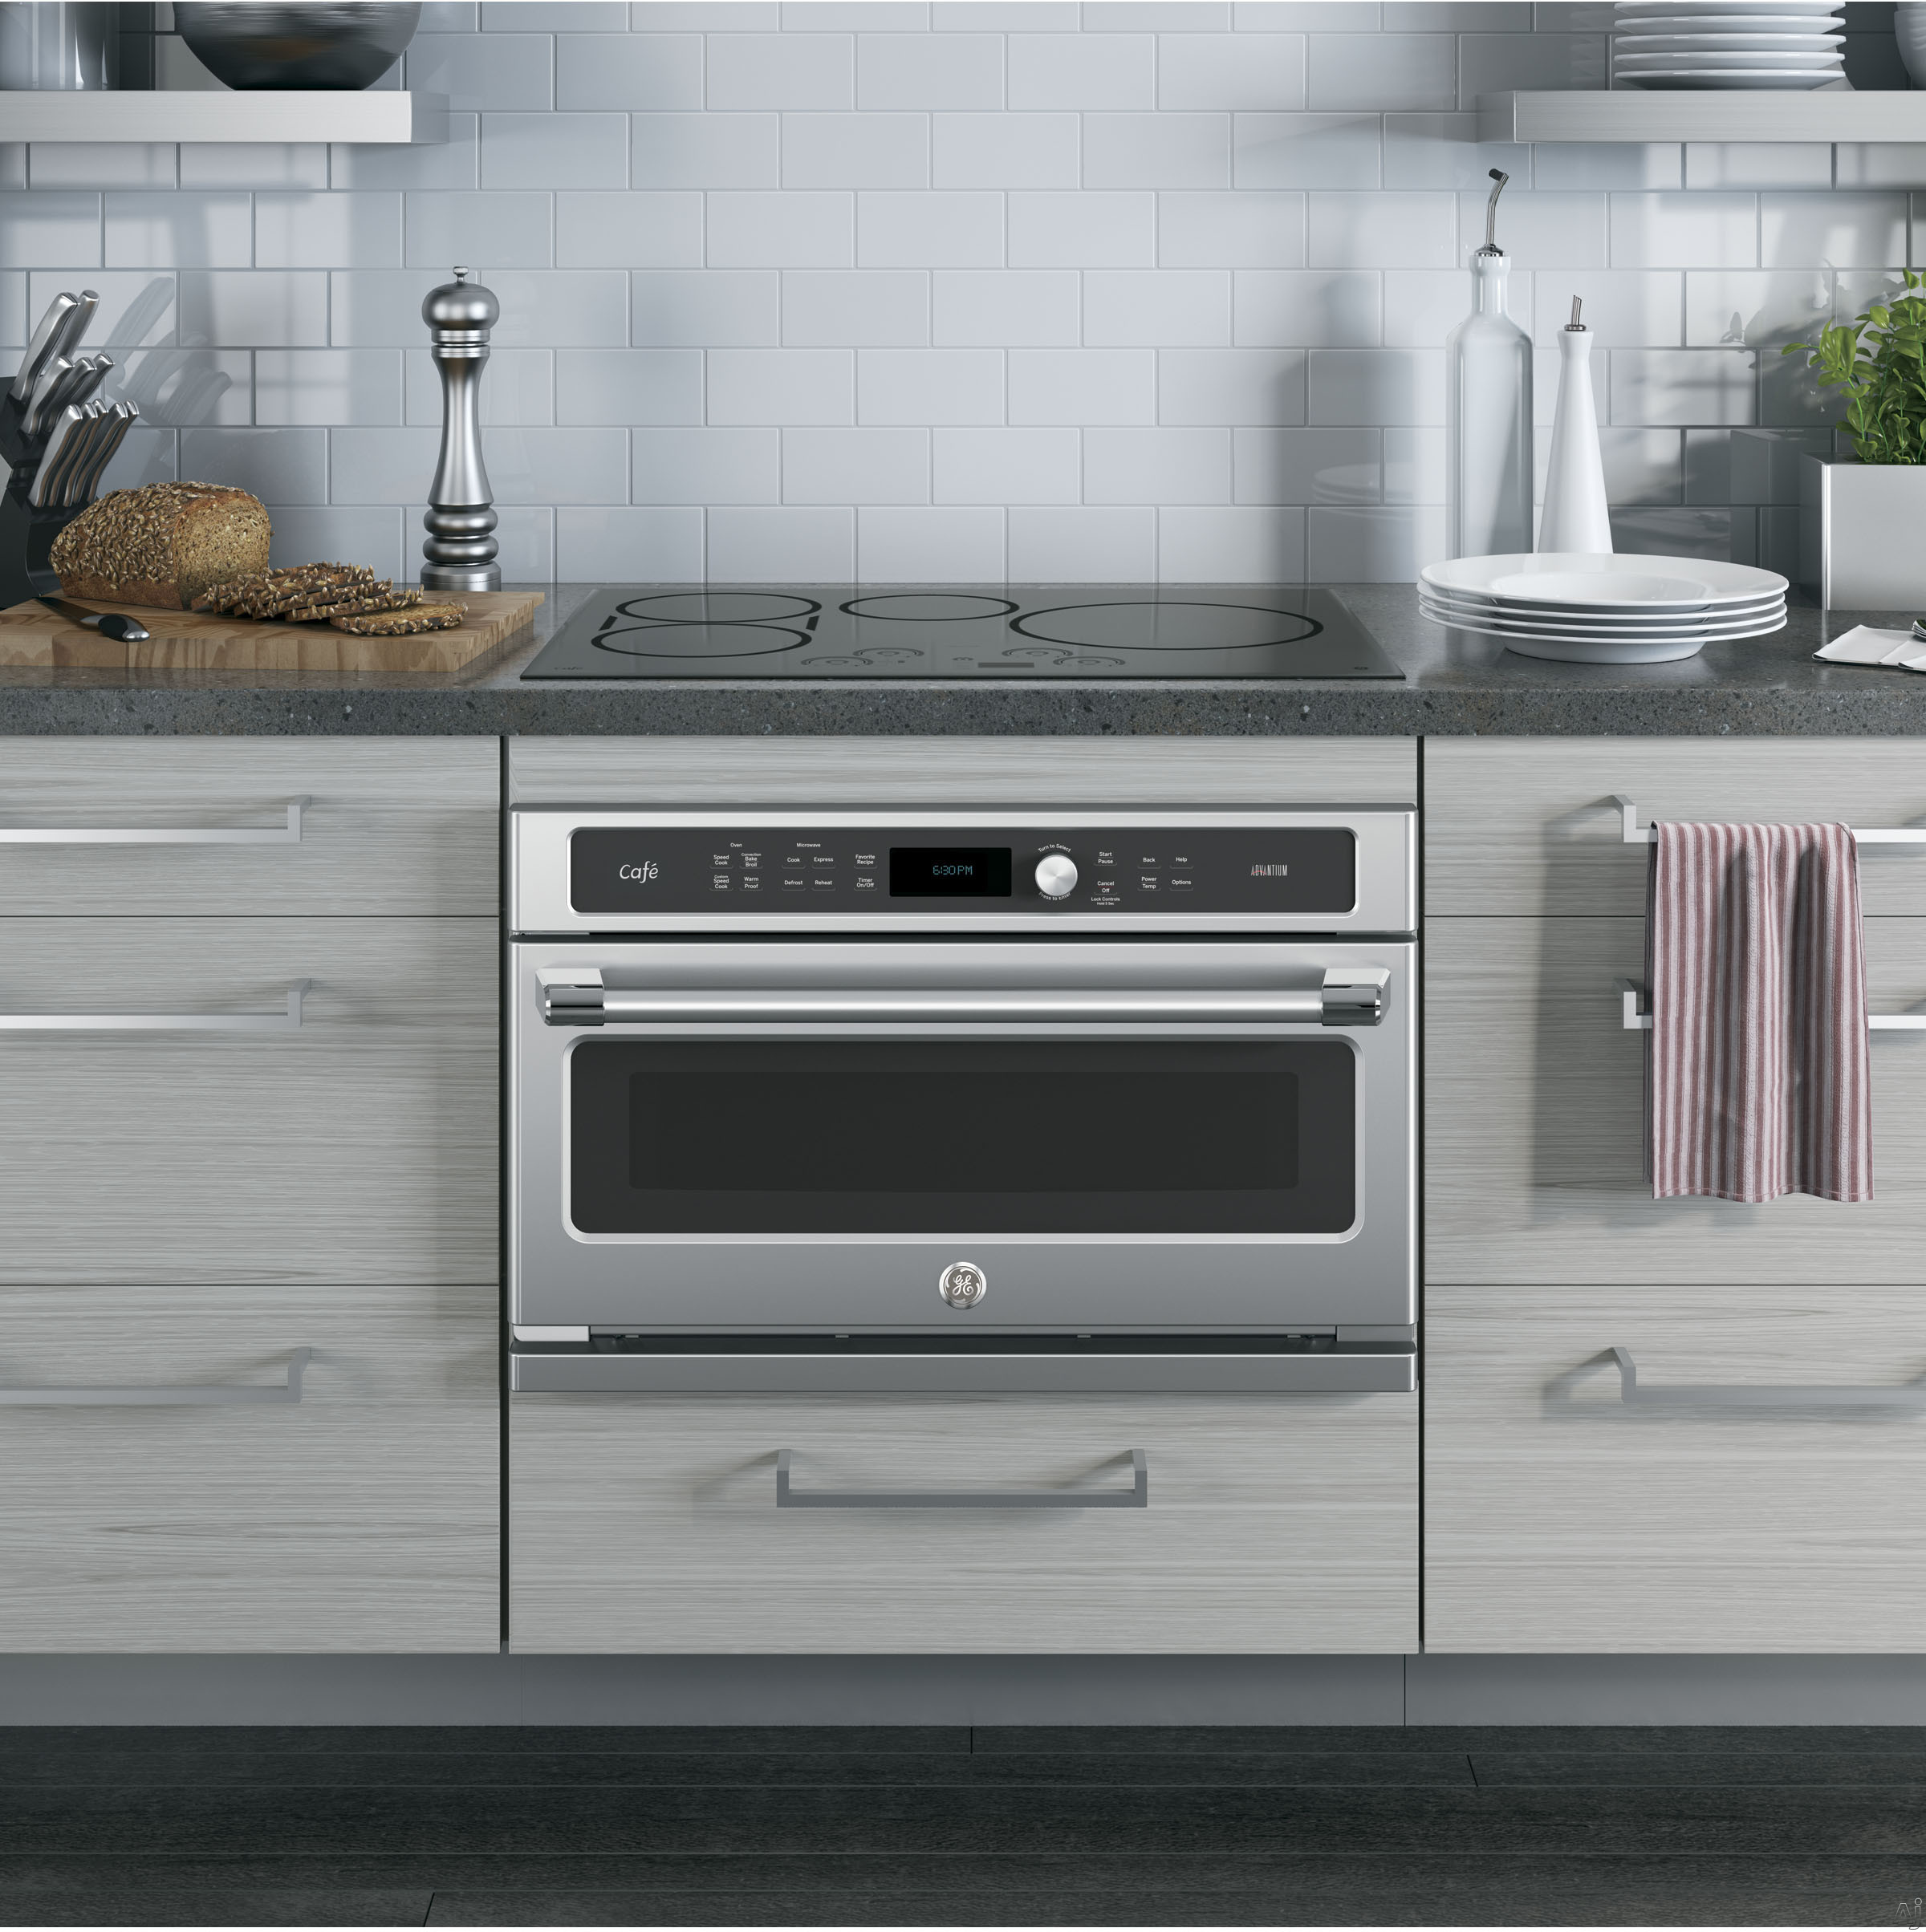 Oven Used In Bake Off Csbsjss Lifestyle View